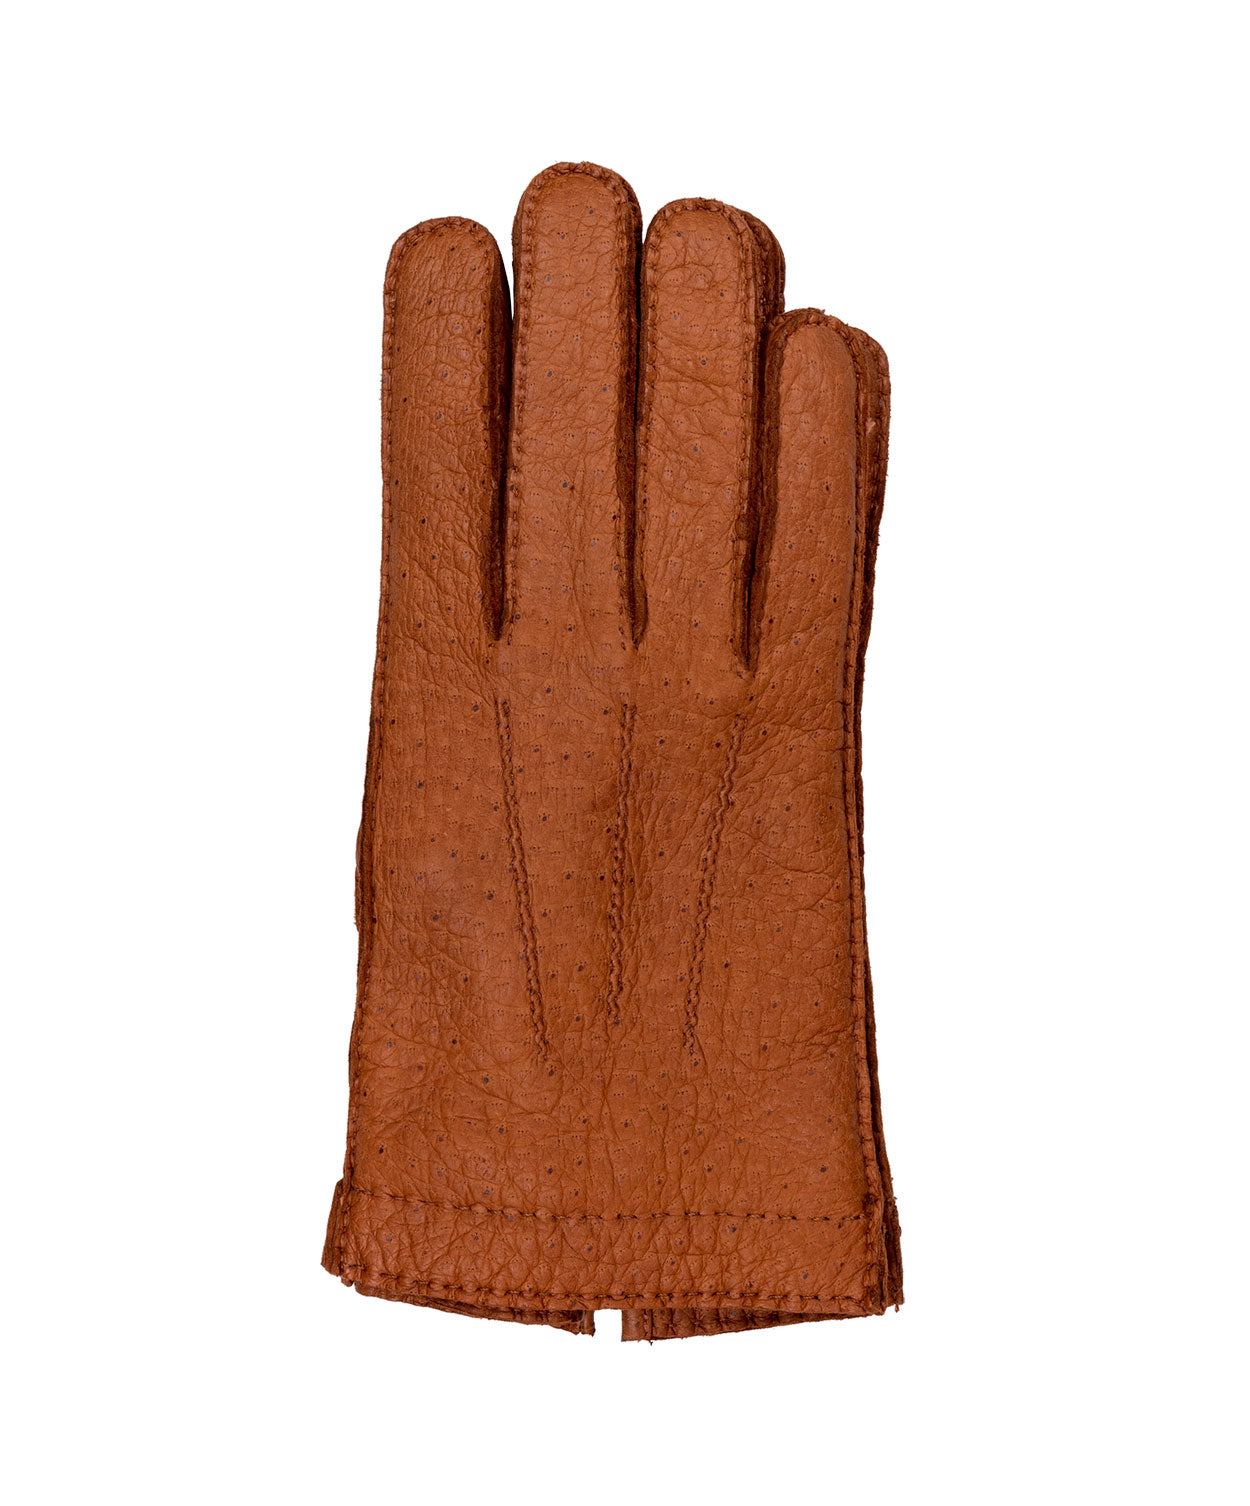 Peccary 382 Congnac Gloves Peccay skin Lining Cashmere